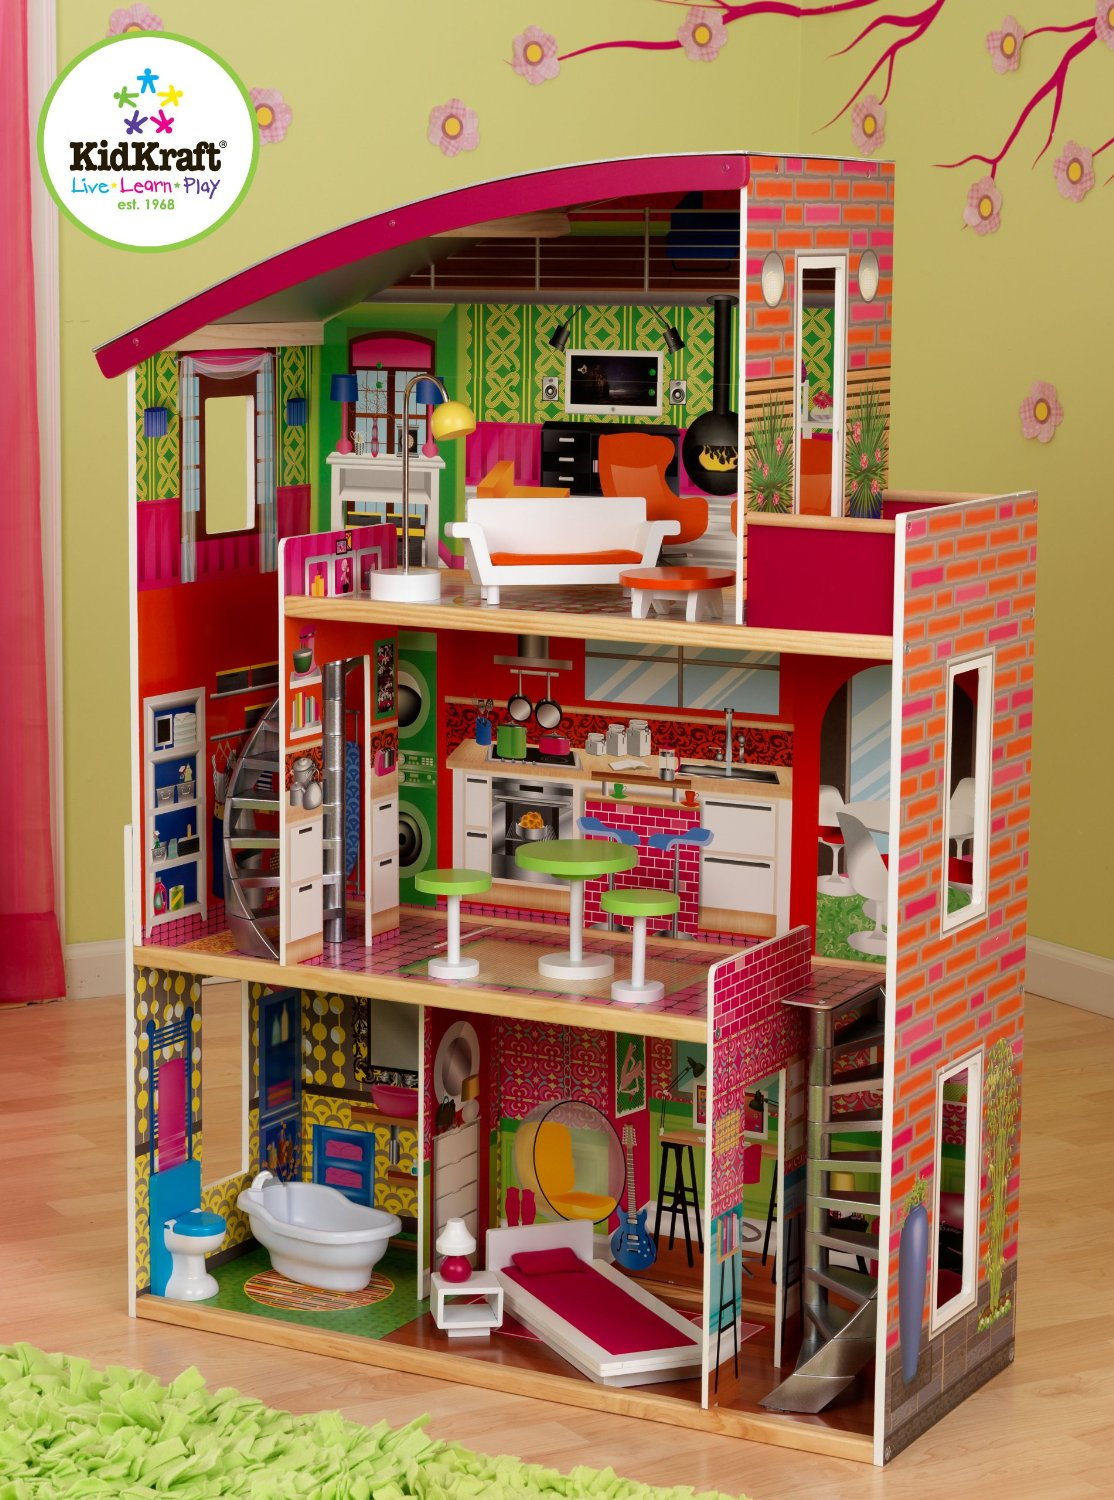 Charming Kidkraft Majestic Mansion Dollhouse 65252 Made Of Wood In Colorful Theme For Kids Play Room Furniture Ideas